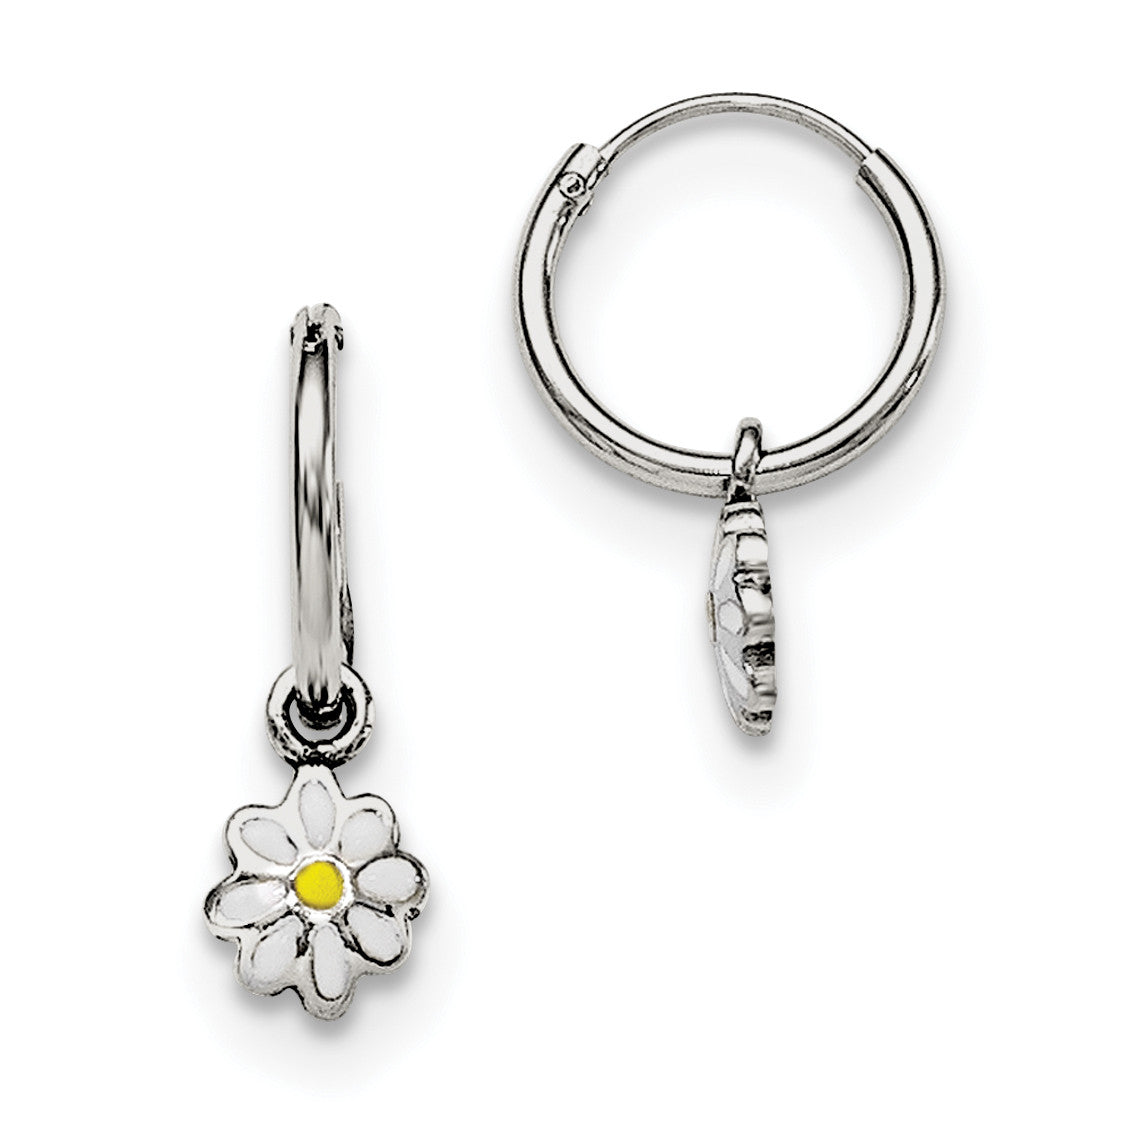 Sterling Silver RH Plated Child's Enameled Daisy Hinged Hoop Earrings QE11236 - shirin-diamonds